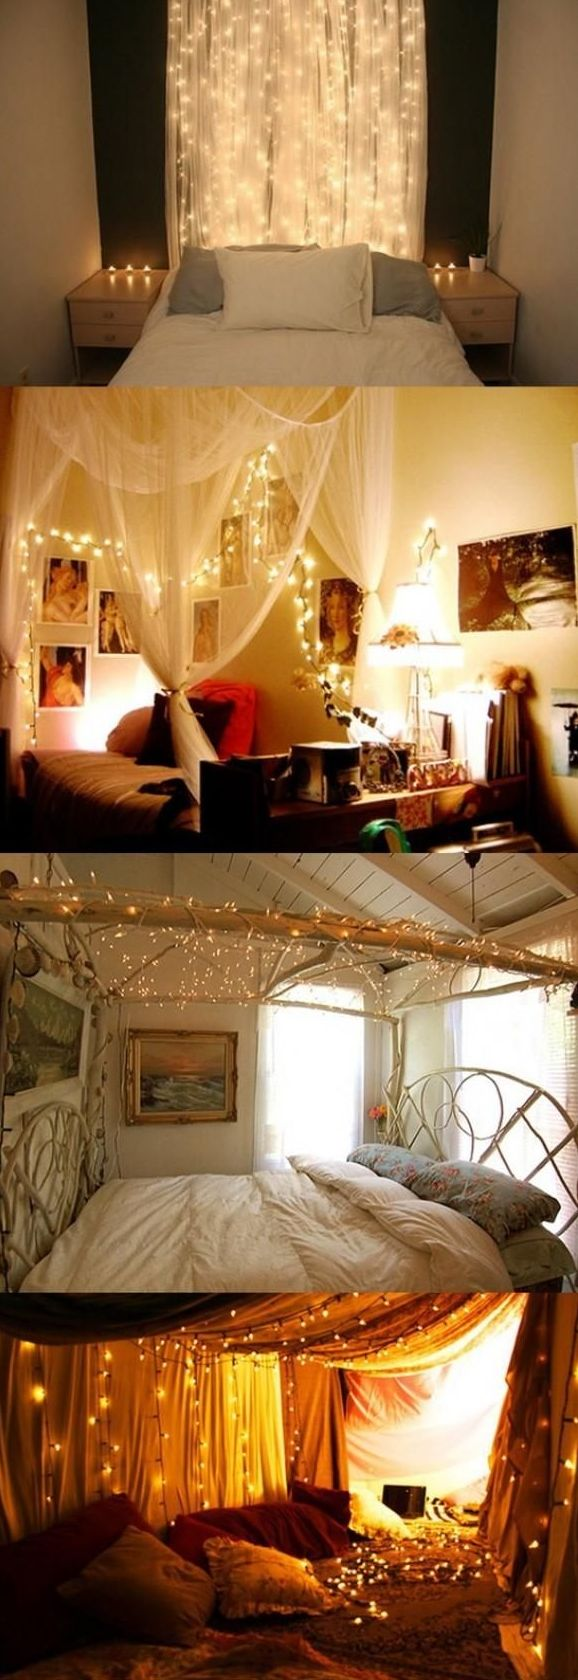 Cosy bedroom fairy lights - Obsessed With Fairy Lights Bedroom